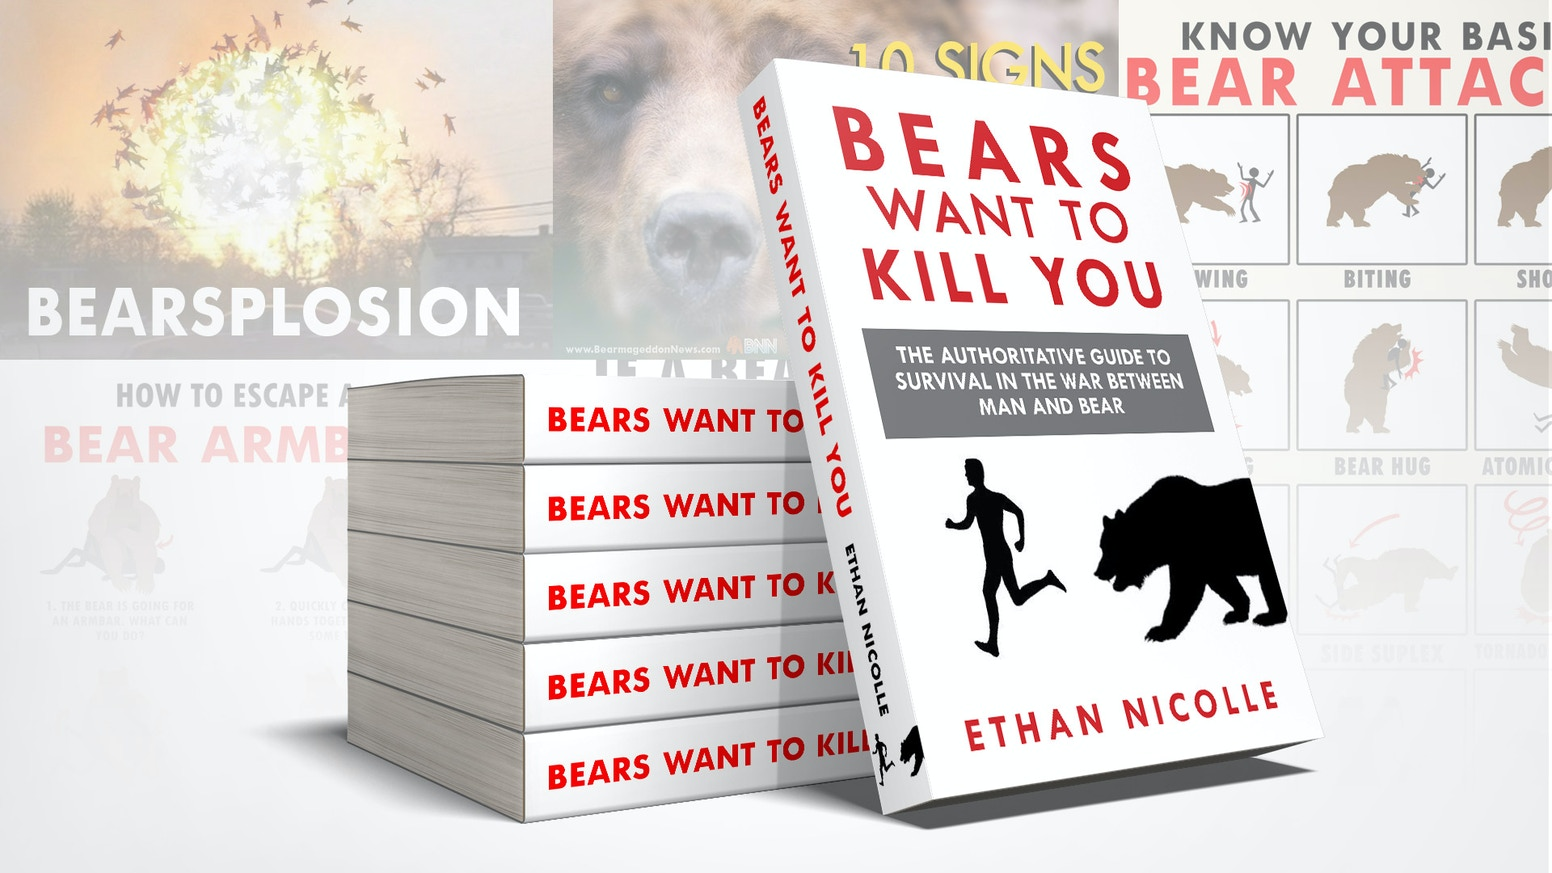 Bears want to kill you by ethan nicolle kickstarter the authoritative guide to survival in the war between man and bear preorders now available publicscrutiny Choice Image